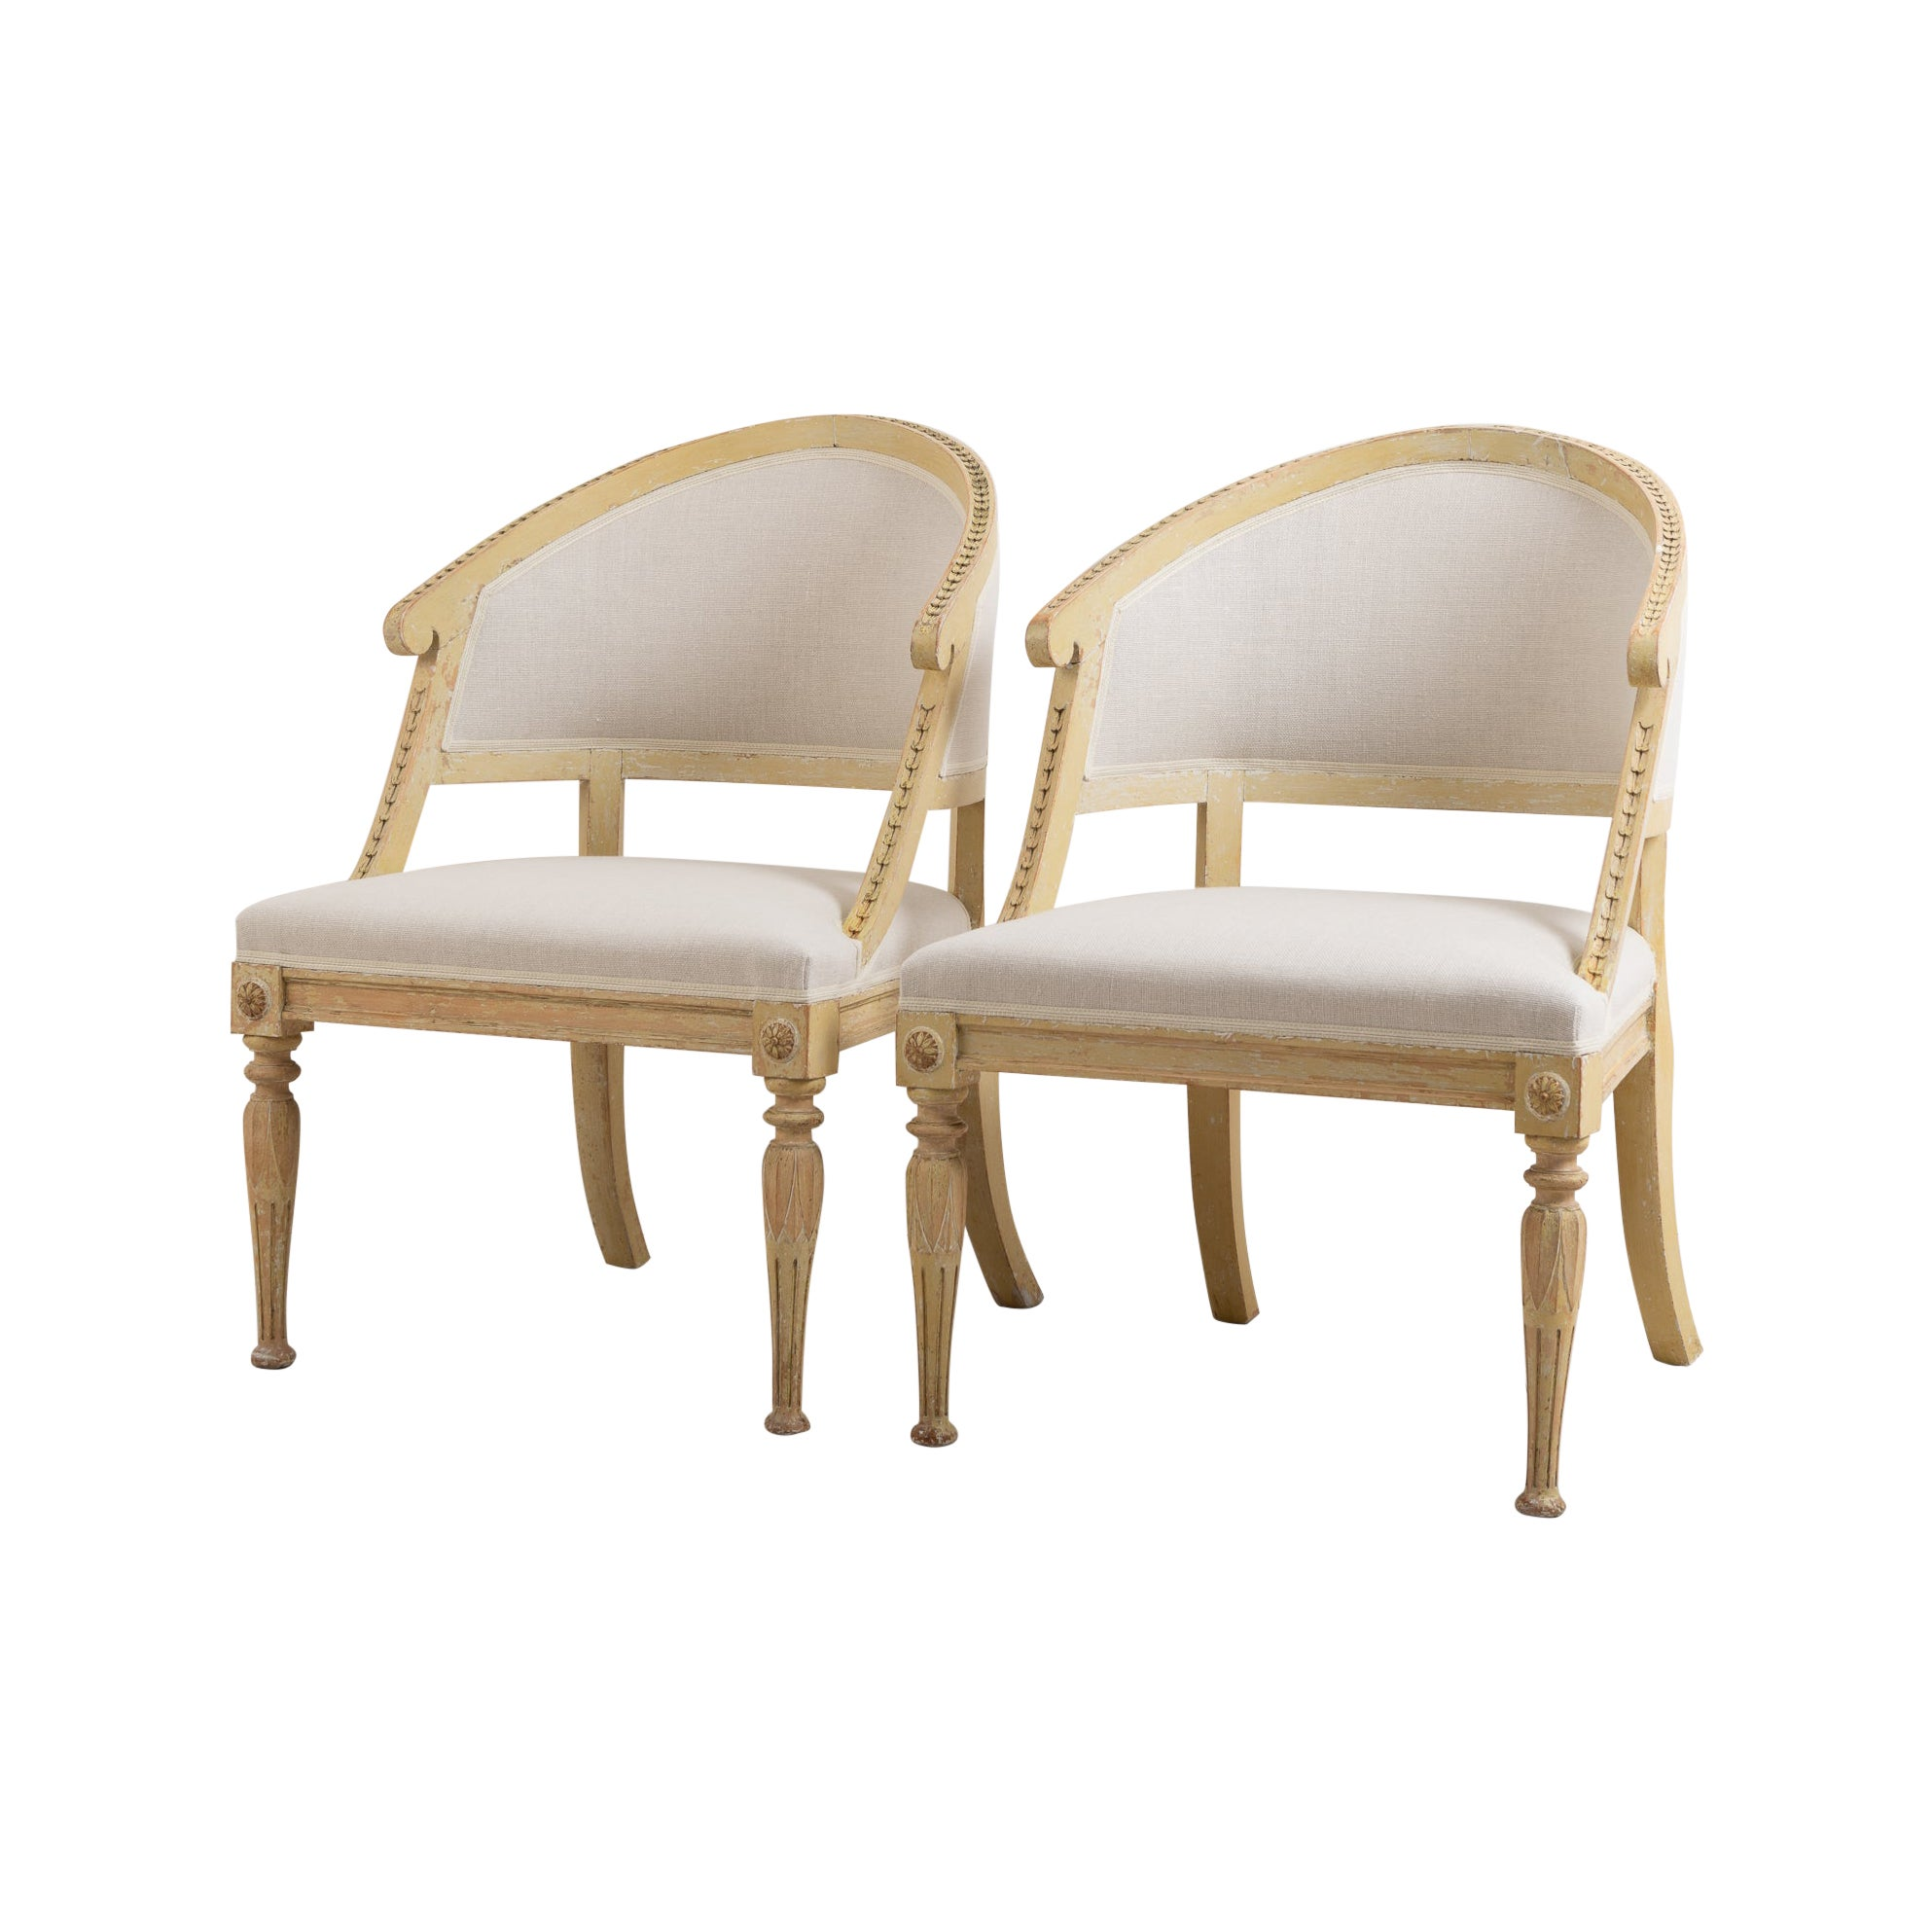 19th Century Swedish Gustavian Style Barrel Back Chairs